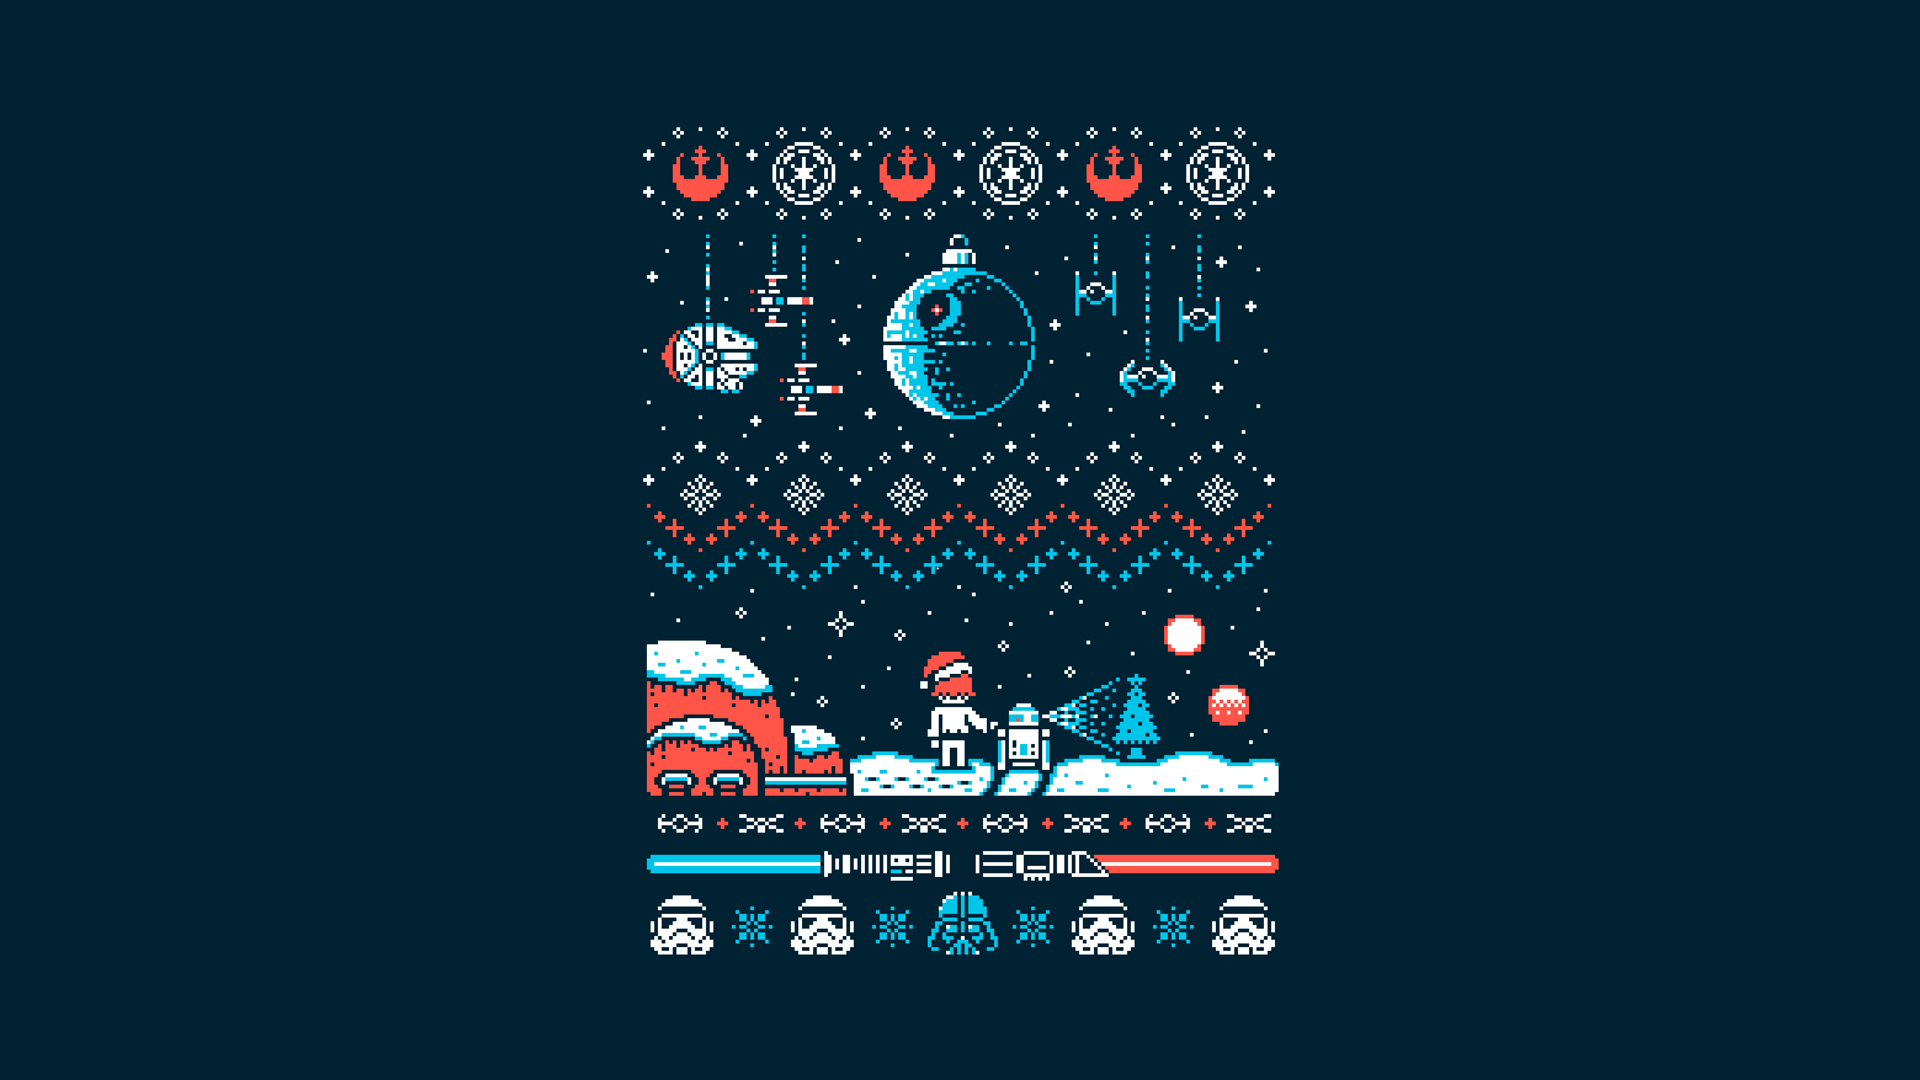 1920x1080 Turned This Star Wars Christmas Sweater Design Into A Wallpaper R Wallpap Star Wars Christmas Sweater Star Wars Christmas Funny Christmas Shirts